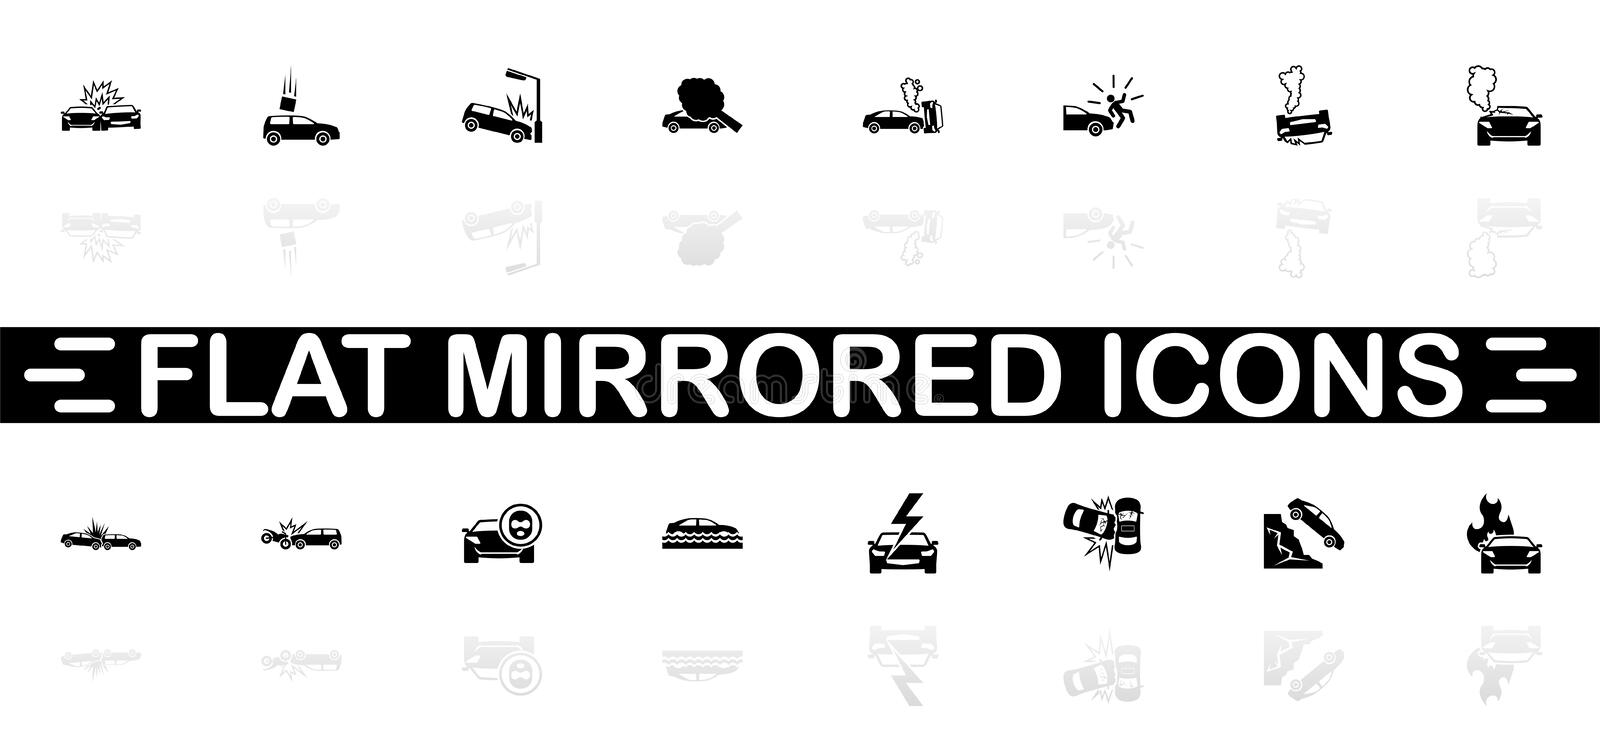 Car Crashes - Flat Vector Icons. Car Crashes icons - Black symbol on white background. Simple illustration. Flat Vector Icon. Mirror Reflection Shadow. Can be stock illustration